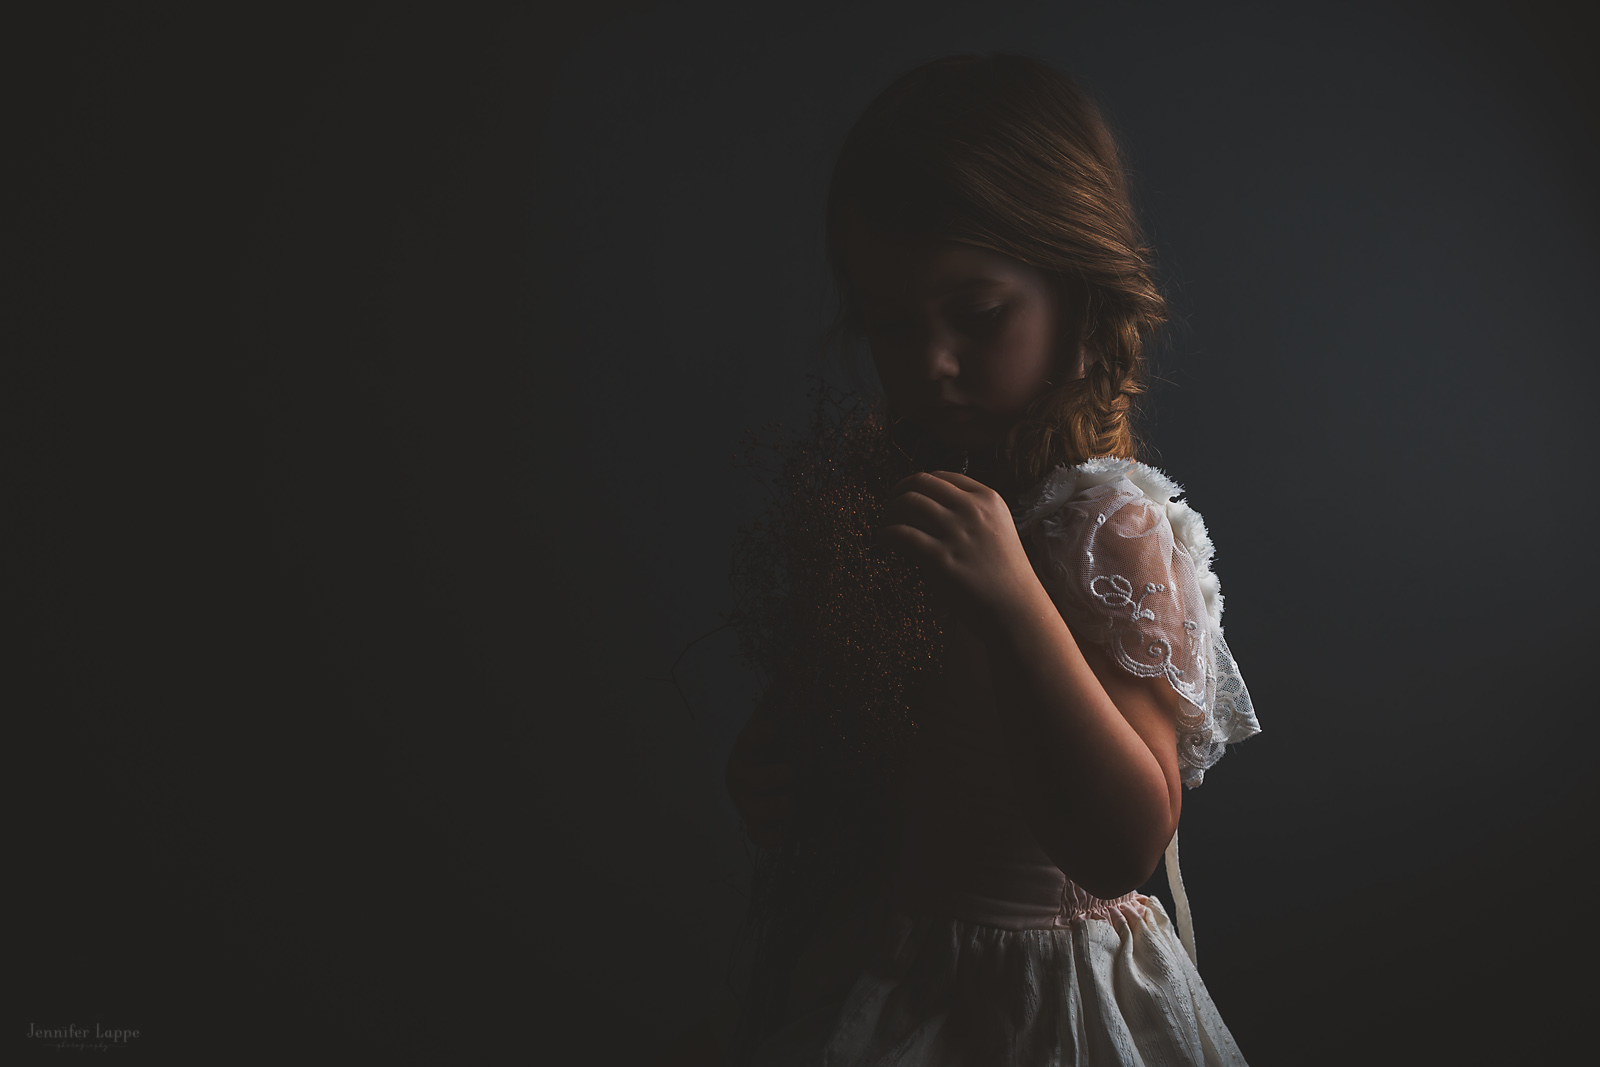 low light picture of girl in a white dress by Jennifer Lappe